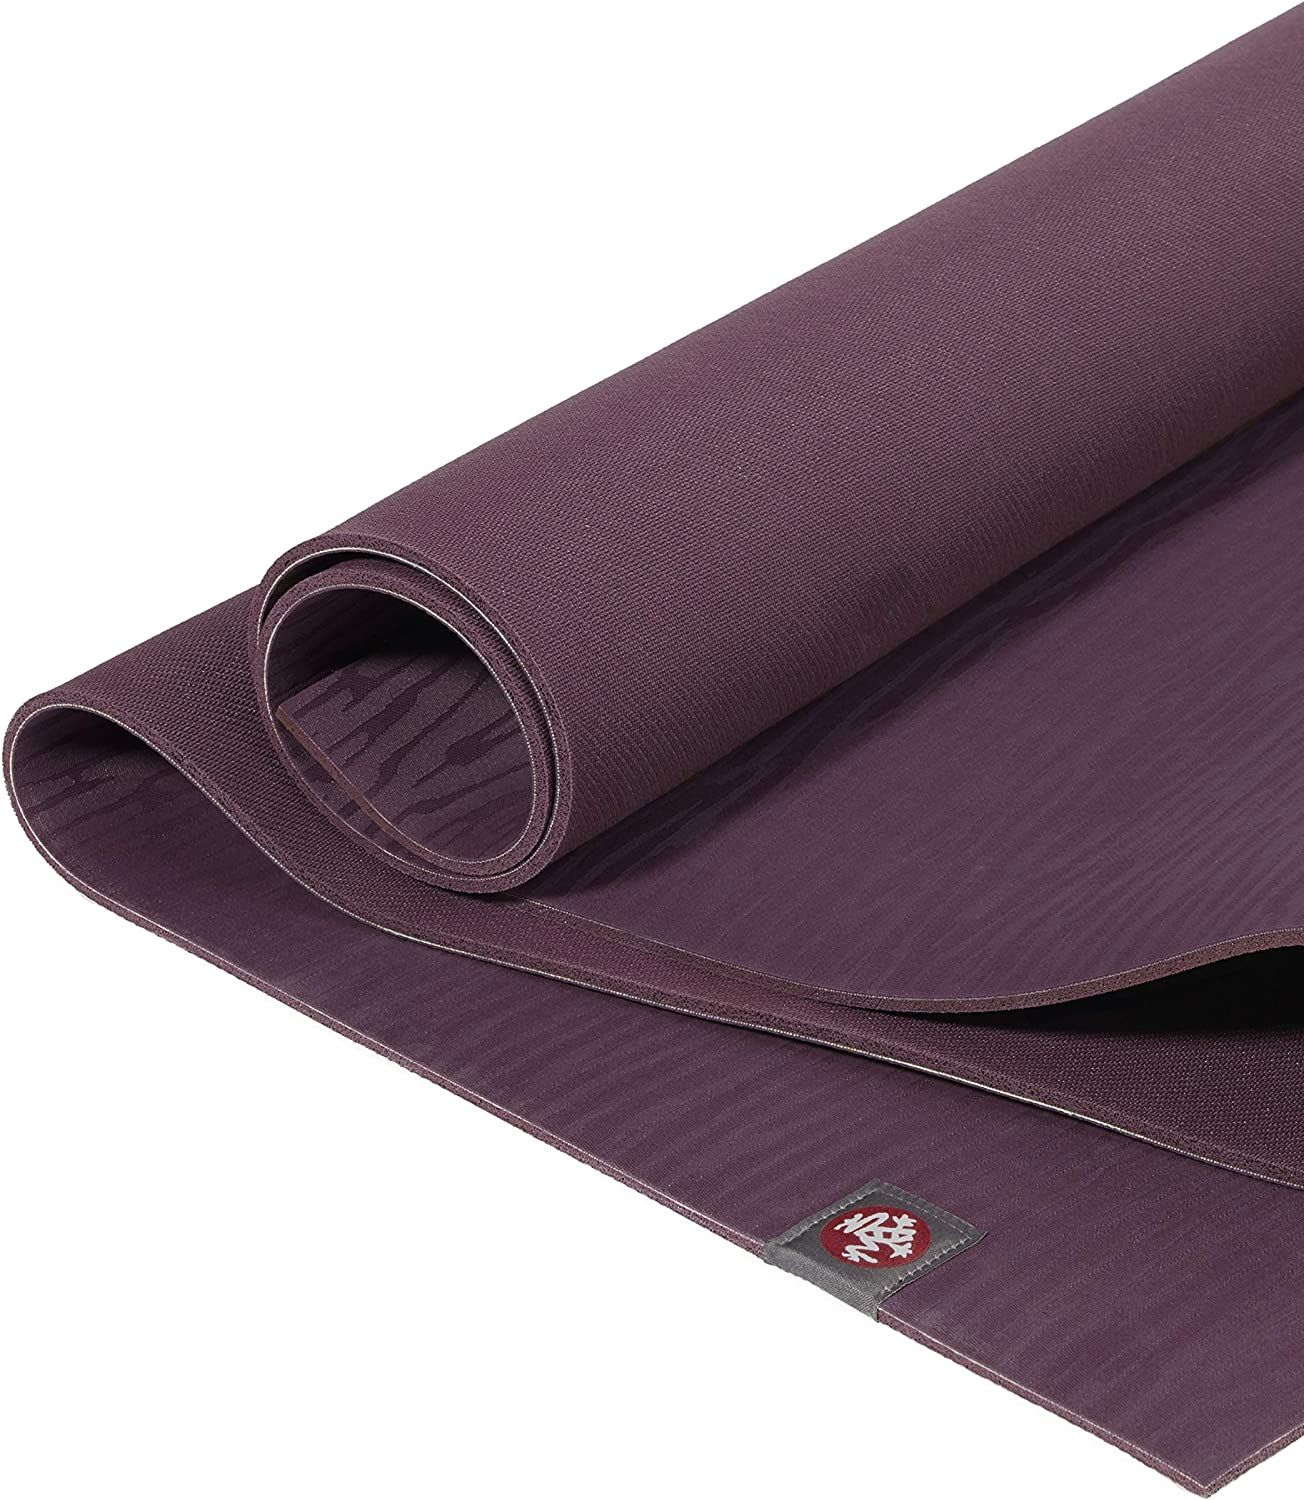 Manduka eKO Yoga Mat – Premium 5mm Thick Mat, Eco Friendly and Made from Natural Tree Rubber. Ultimate Catch Grip for Superior Traction, Dense ...